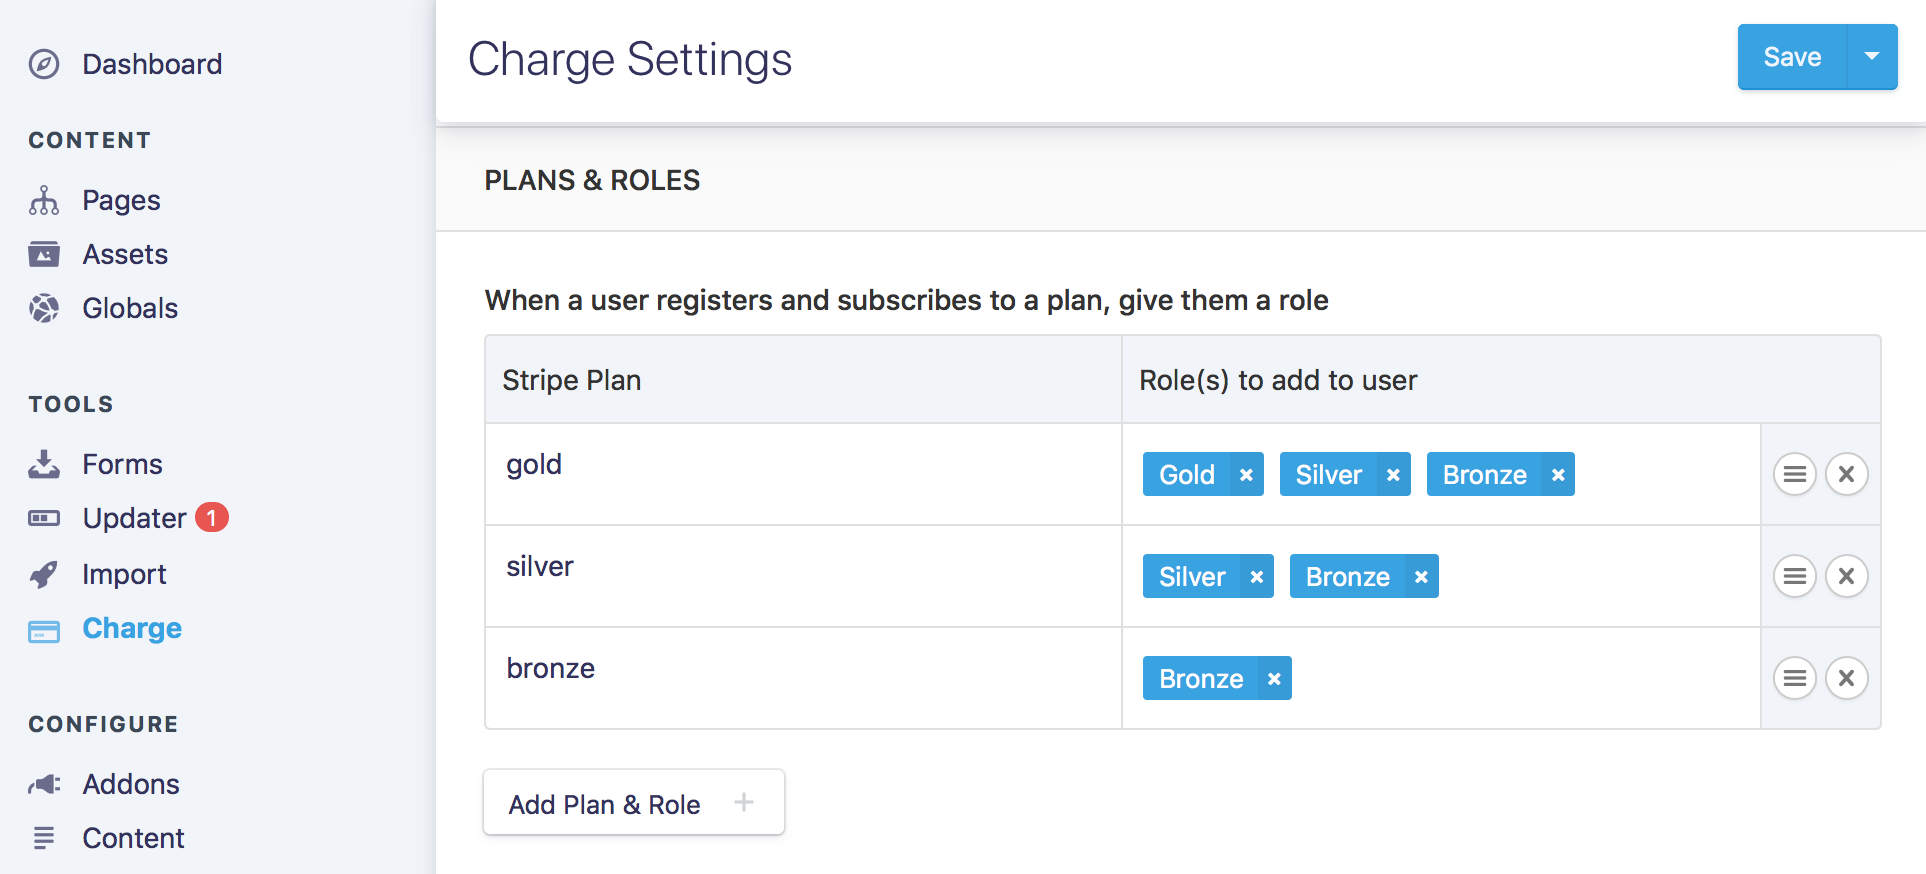 Mapping Stripe plans to Roles in the Statamic Control Panel with Charge